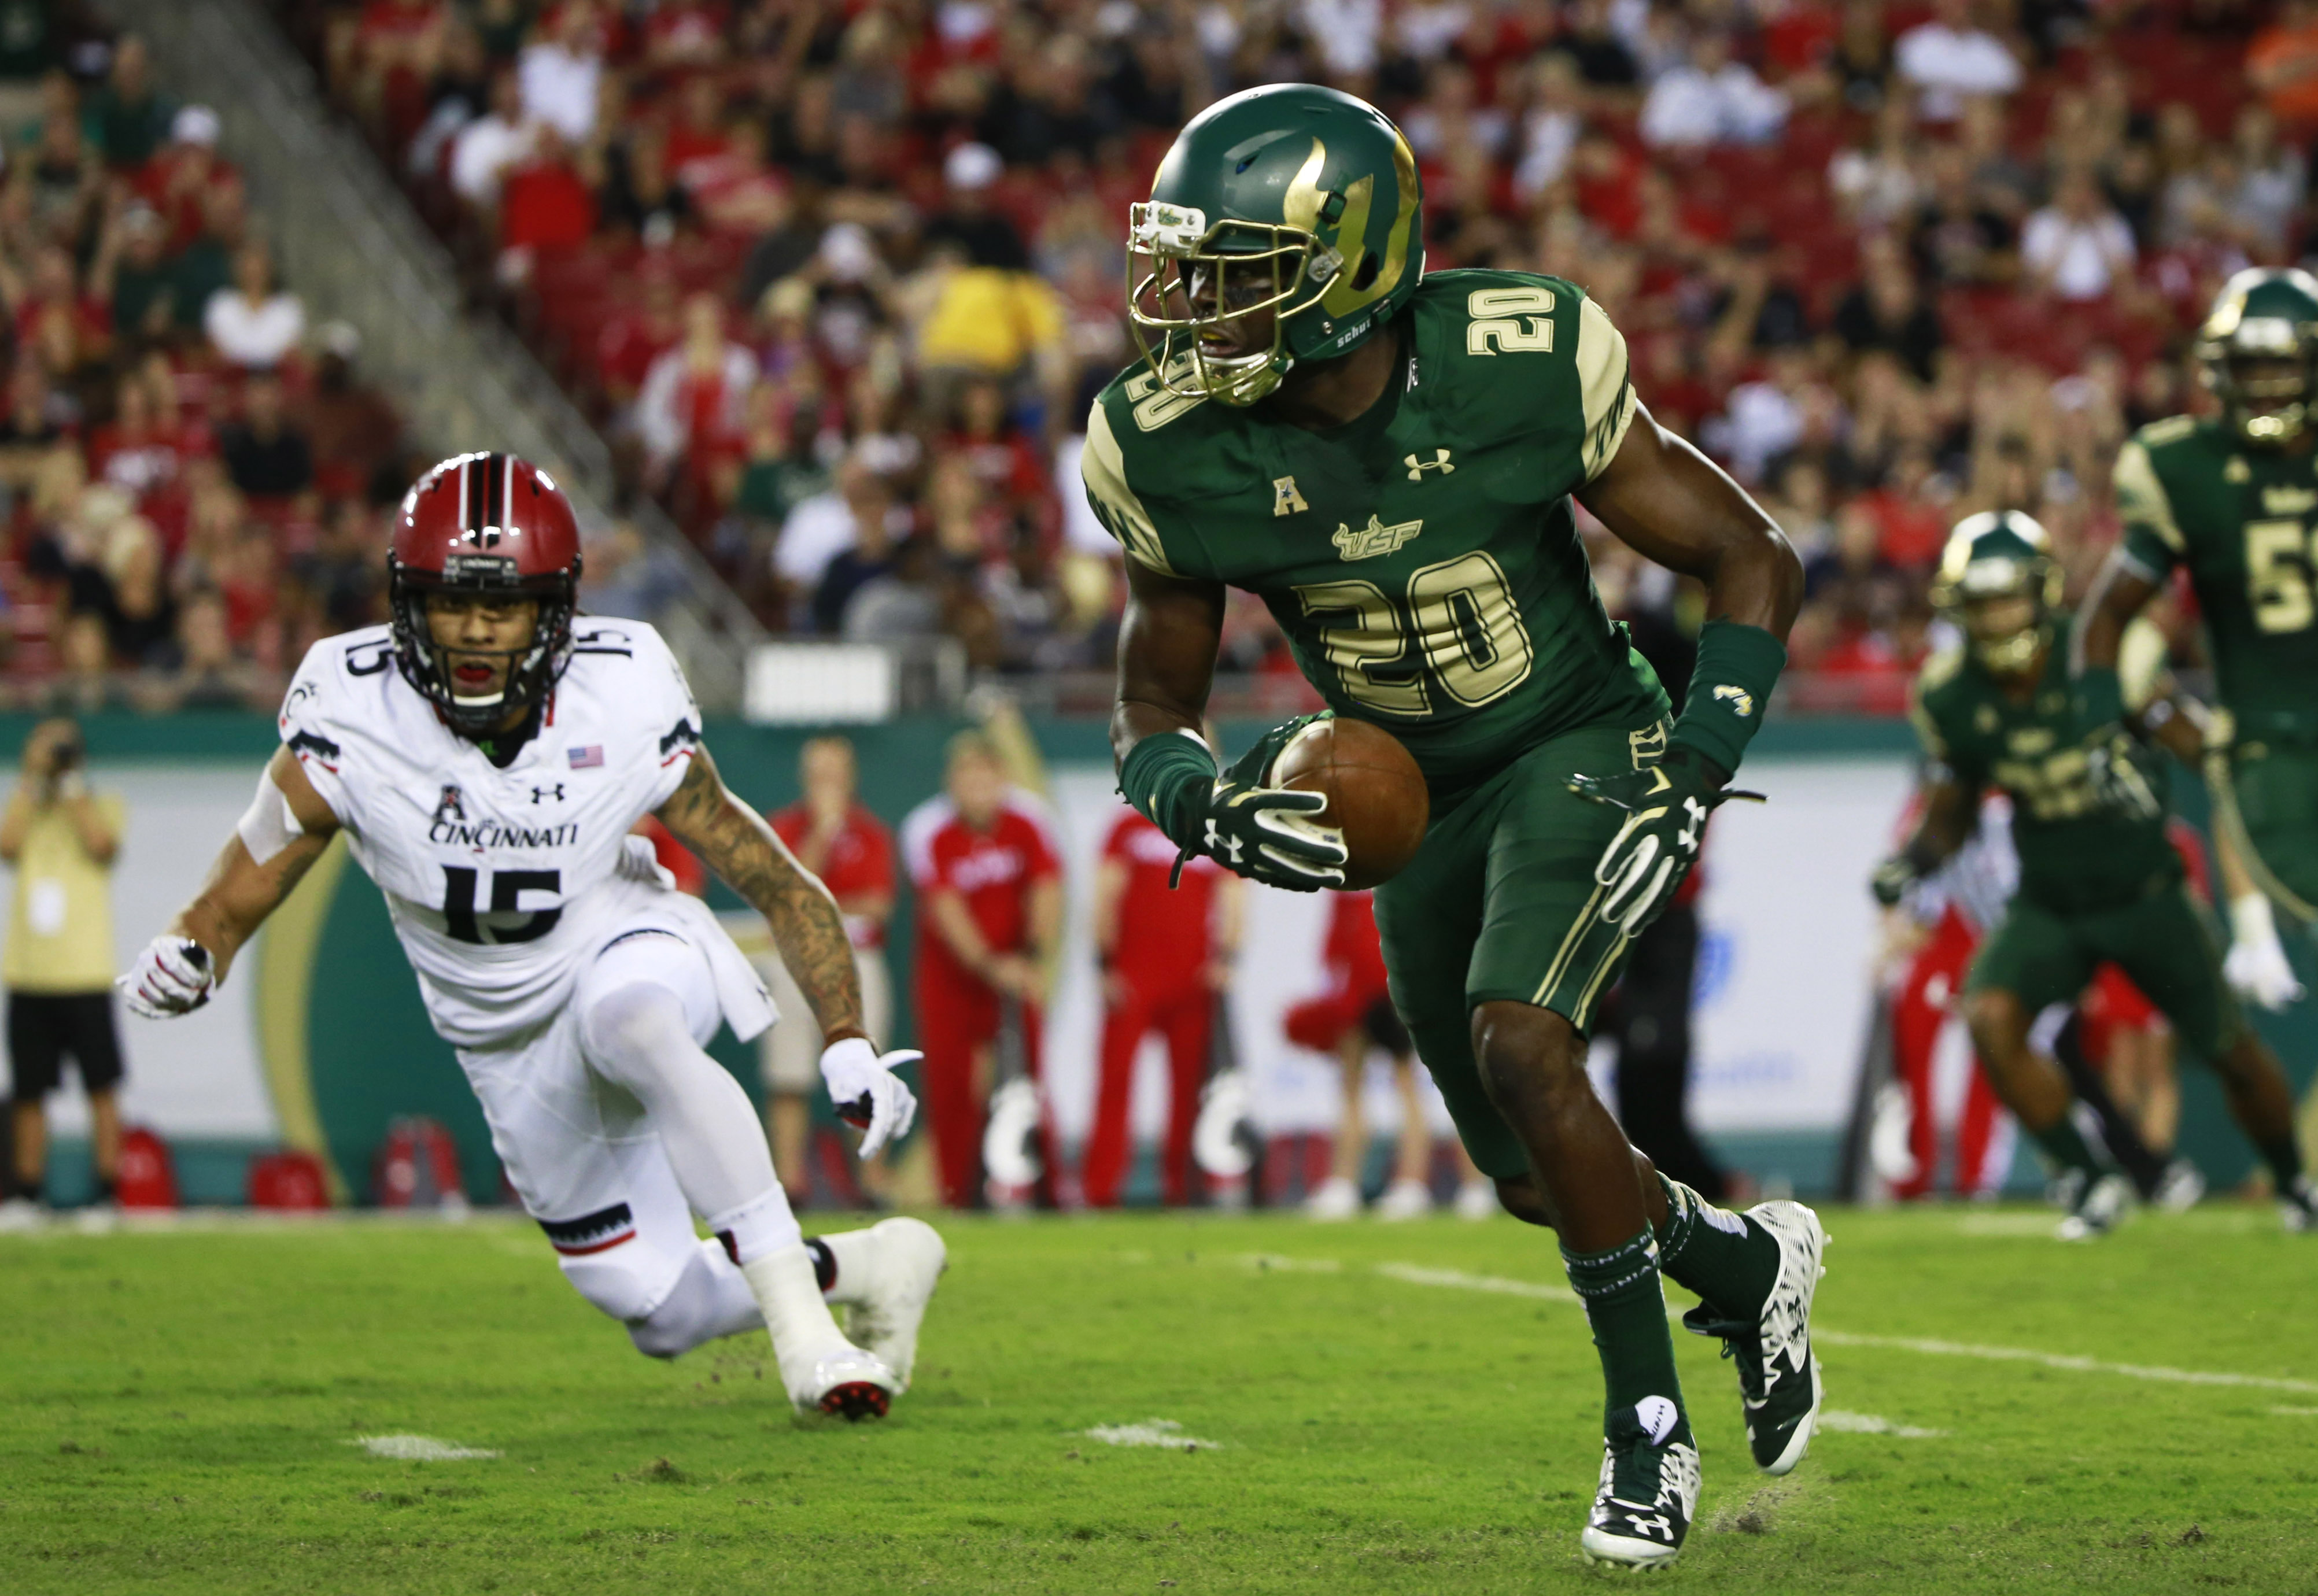 Friday S Illinois Usf Game Features Unique Father Son Matchup